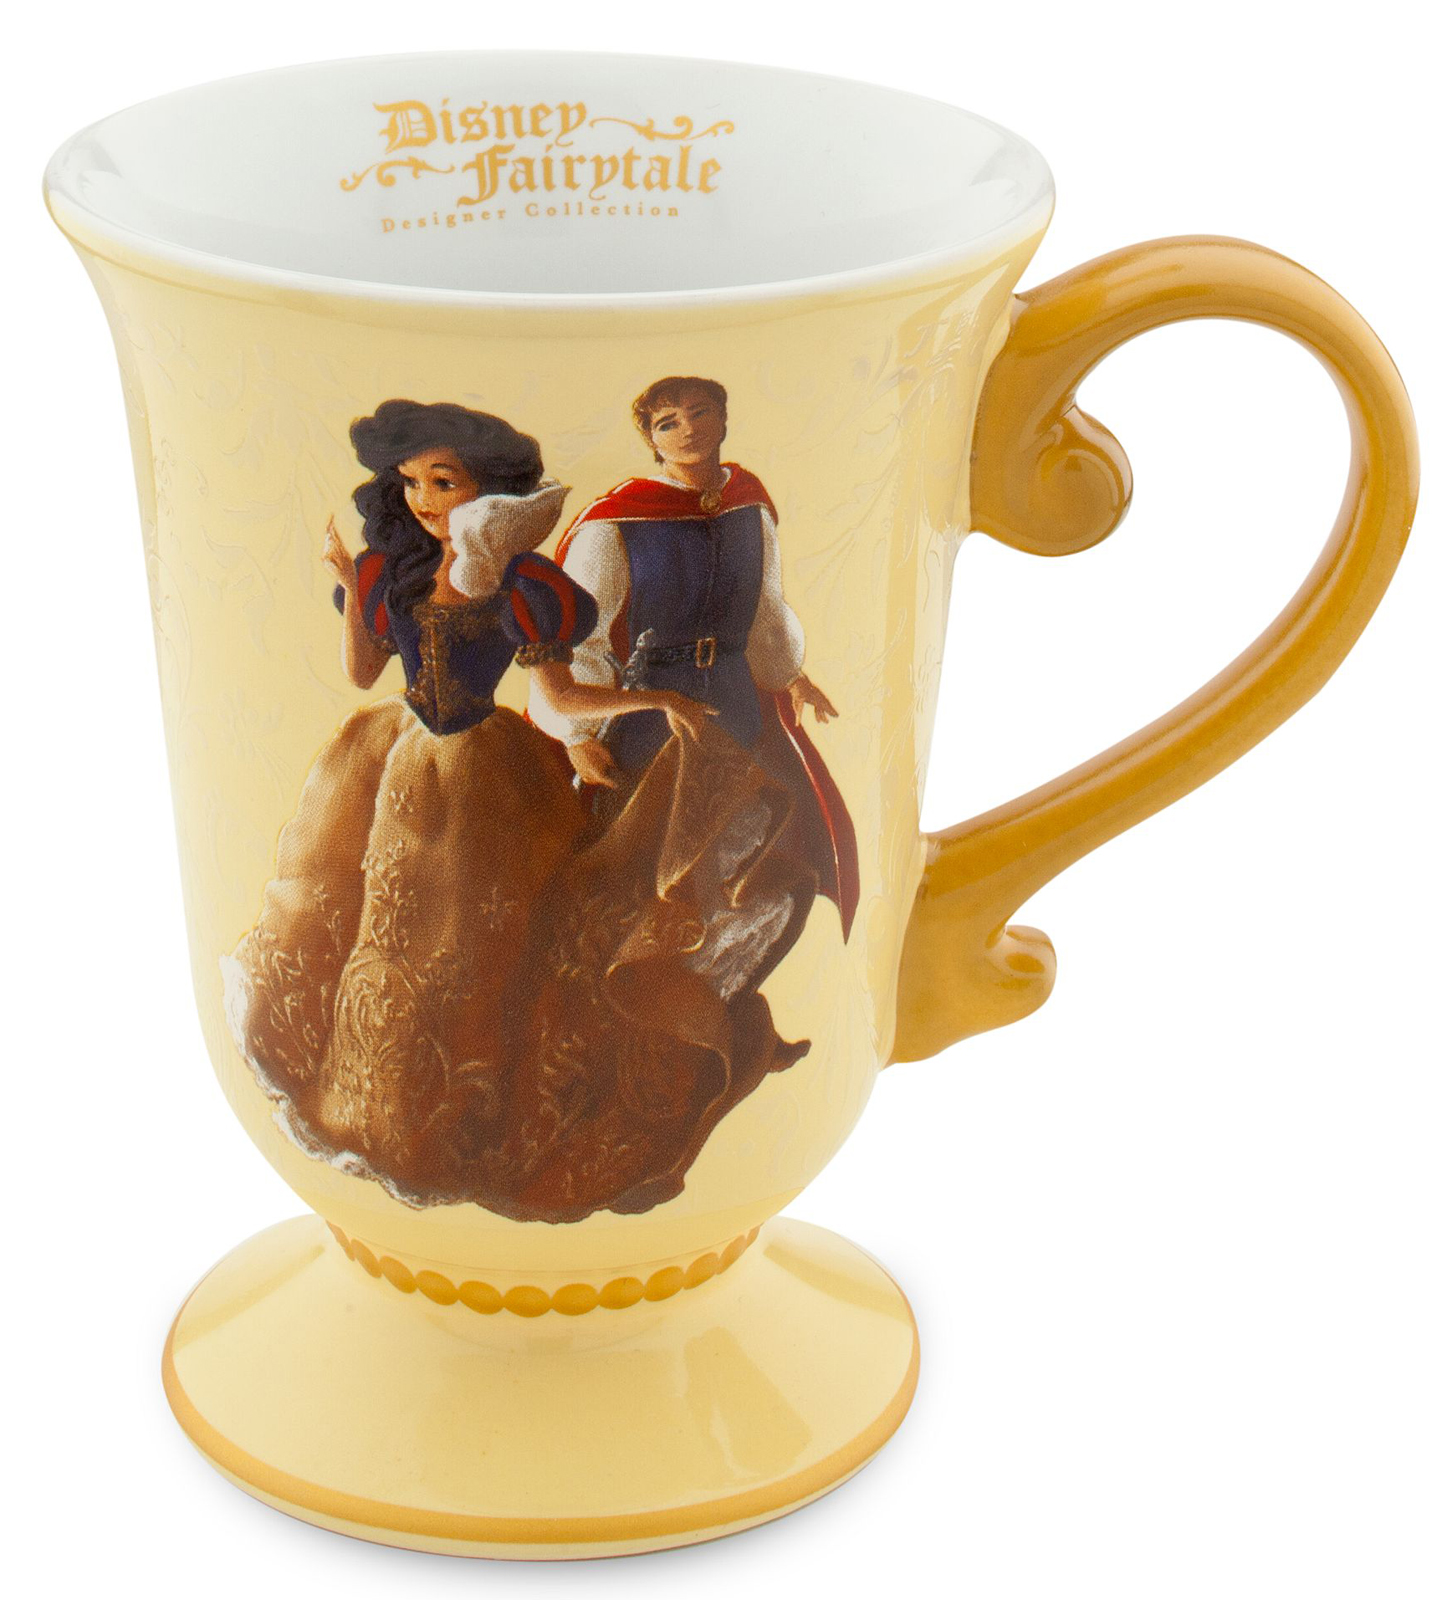 Designer Cups And Mugs Filmic Light Snow White Archive 2013 Fairytale Designer